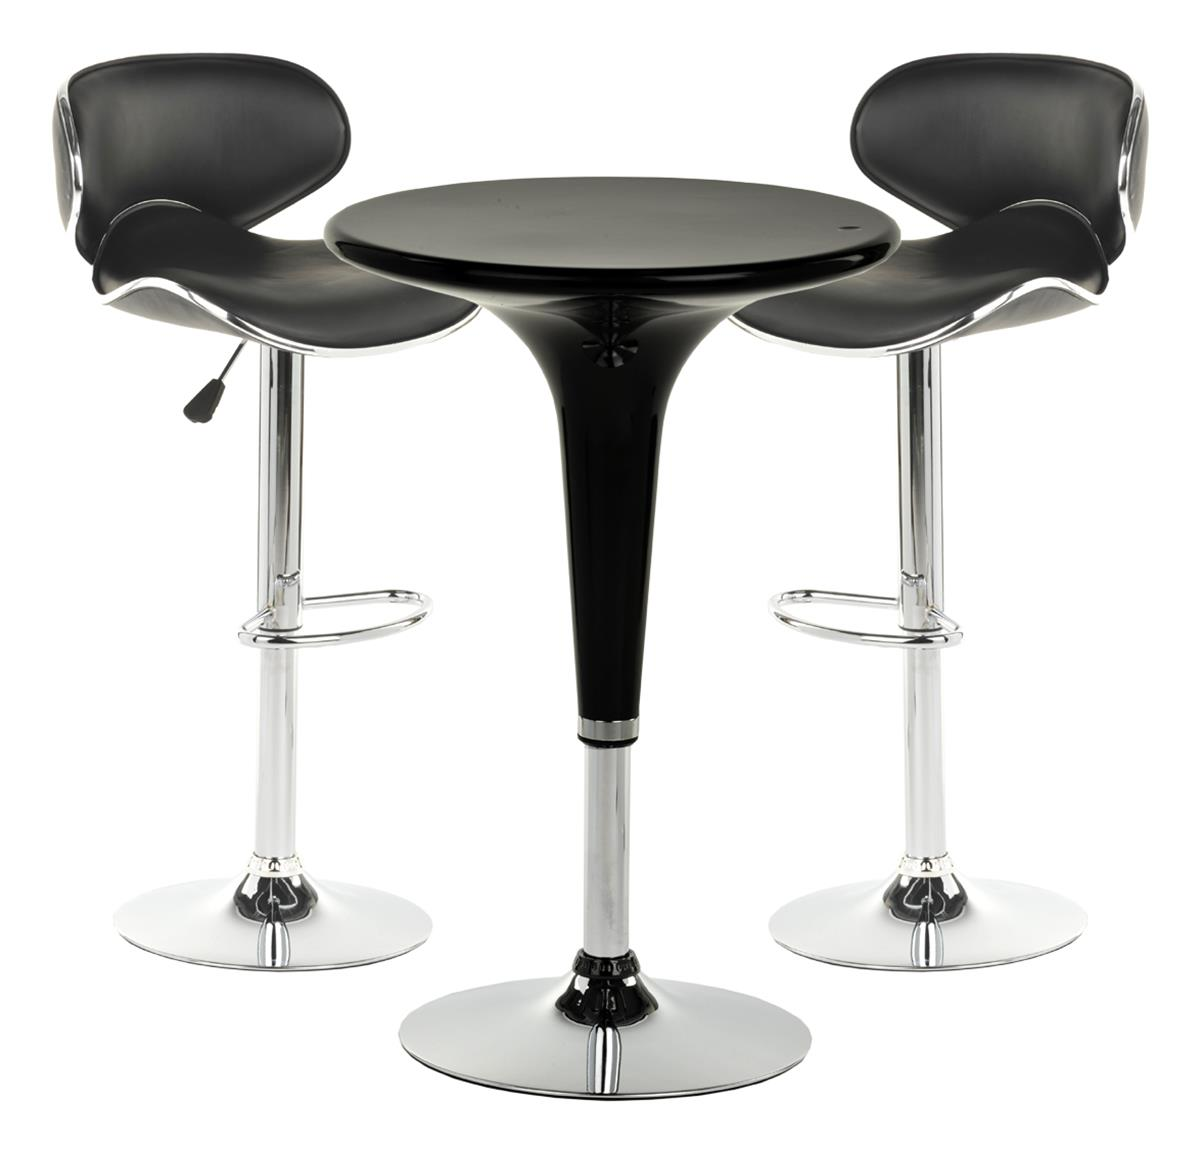 this chrome pub table set is modern furniture with a retro charm  - this chrome pub table set is modern furniture with a retro charm forpersonal or commercial use this furniture collection is black and chrometo match with